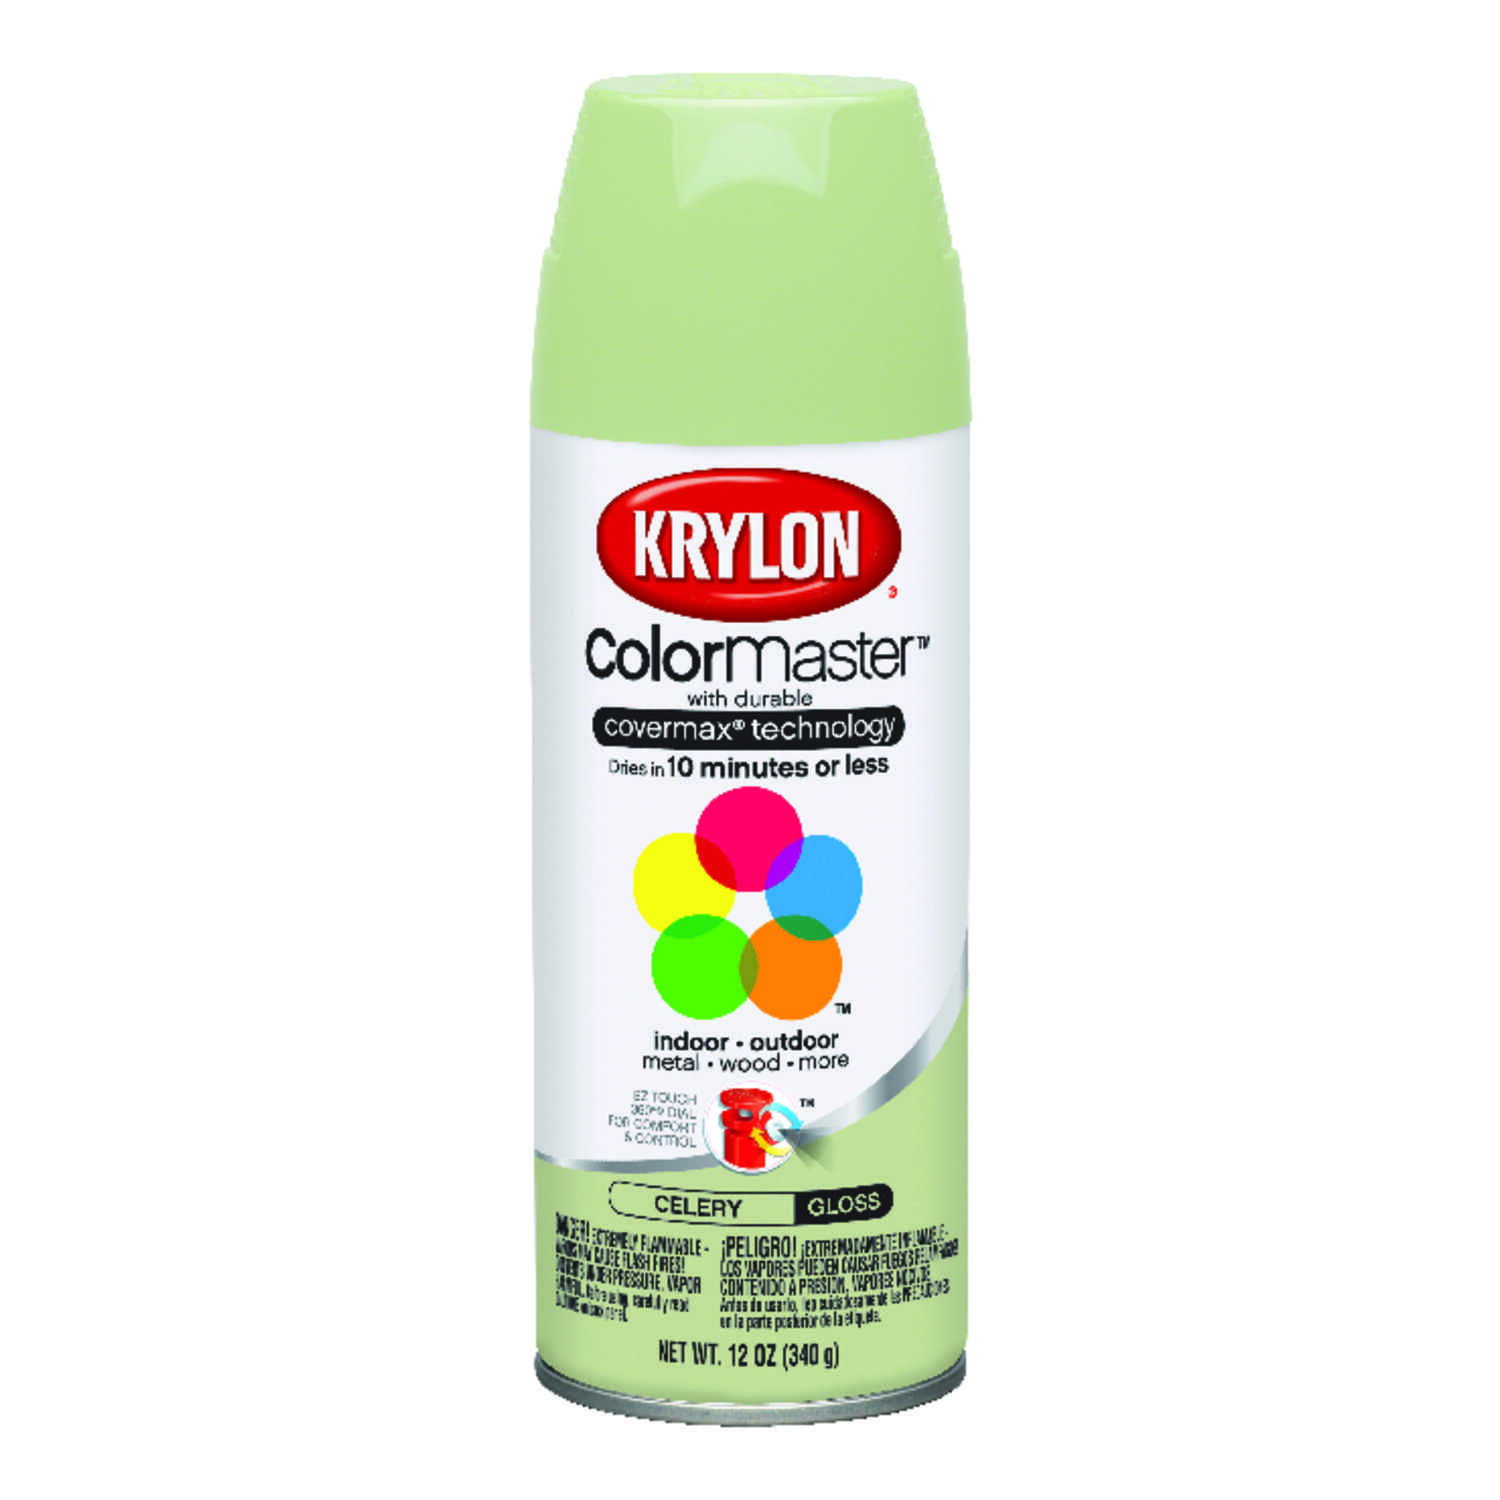 Krylon  ColorMaster  Gloss  Celery  Spray Paint  12 oz.